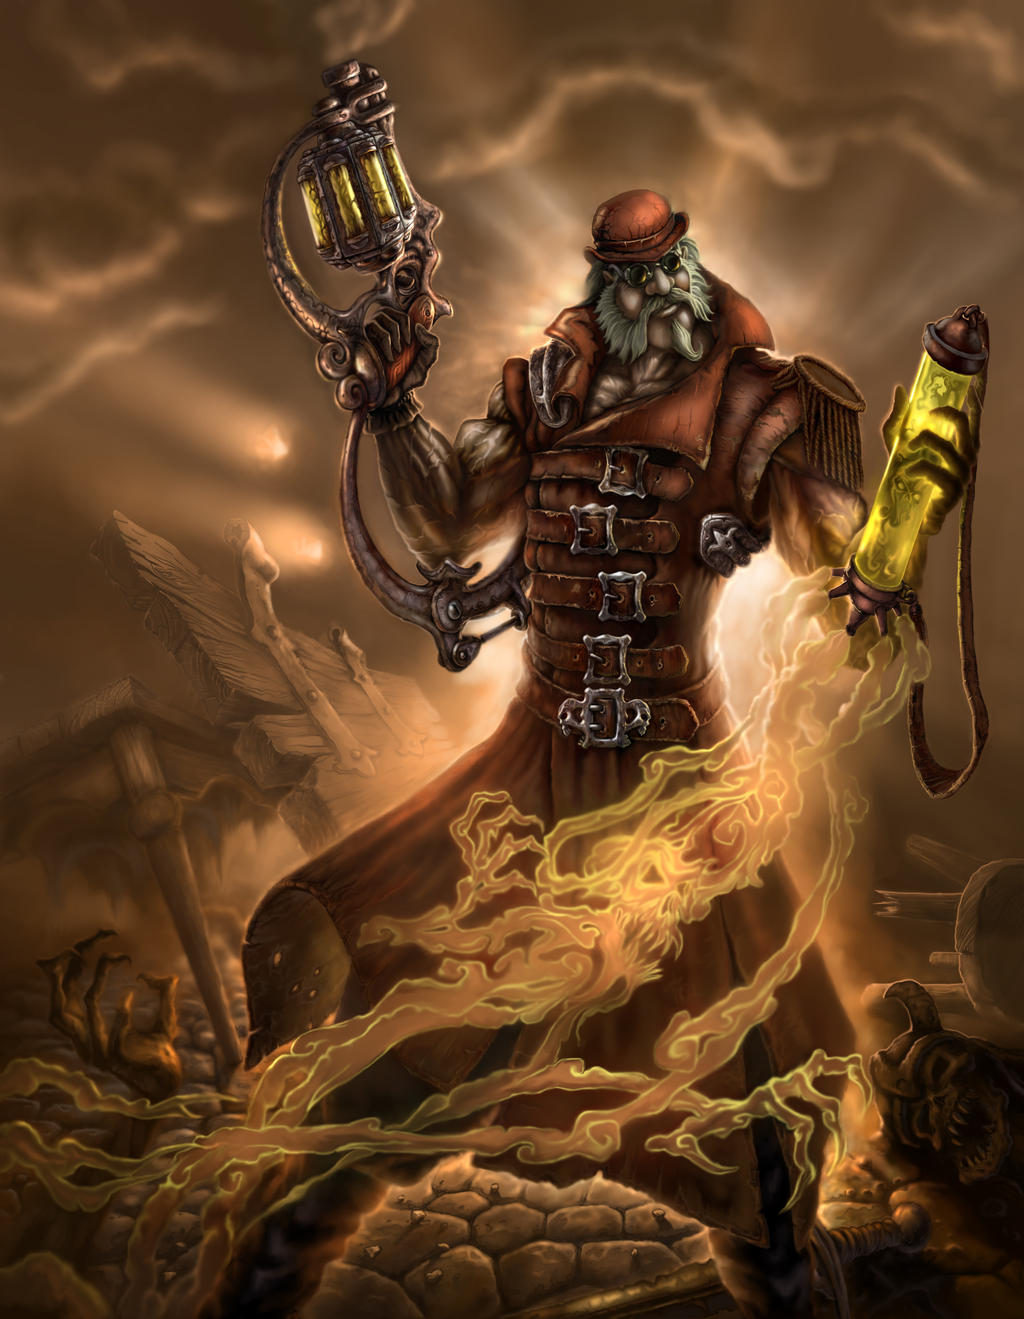 Steampunk Warrior by Serj-Lican on DeviantArt